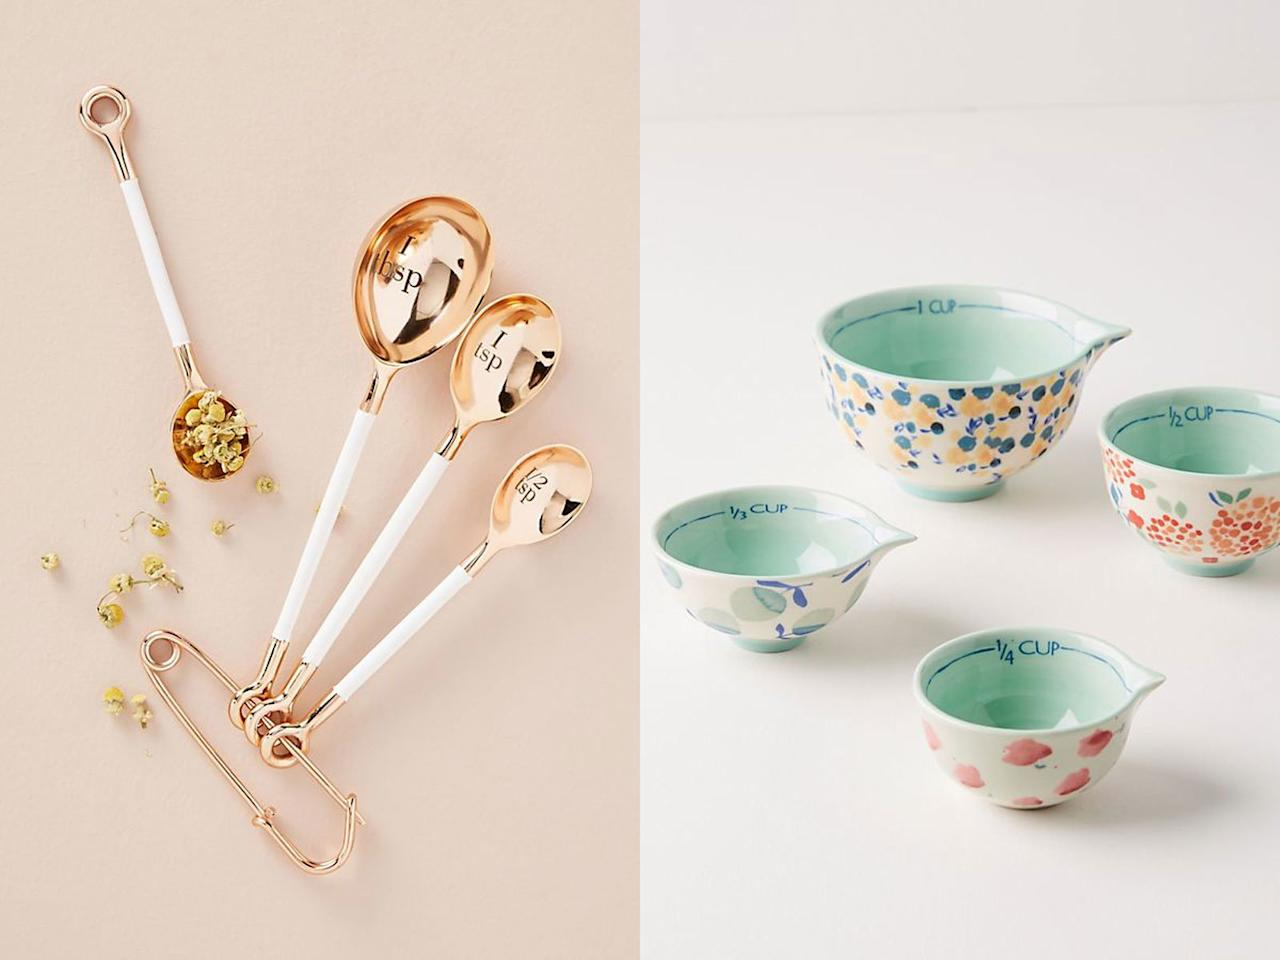 """<p>A quirky and gorgeous pair from Anthropologie, these 4 piece sets include easy to read measure markings and pour spouts on the cups for low-mess baking with liquid ingredients.</p> <p><em>Delaney Measuring Spoons, Set of 4, $28 at <a href=""""https://click.linksynergy.com/deeplink?id=93xLBvPhAeE&mid=39789&murl=https%3A%2F%2Fwww.anthropologie.com%2Fshop%2Fdelaney-measuring-spoons-set-of-4%2B&u1=FW%2Cmeasuring-cups-spoons-delilah-FT-BLOG0819.jpg%2Cmsoll1271%2C%2CIMA%2C1371916%2C201908%2CI,FW"""" target=""""_blank"""">anthropologie.com</a><br /> Delilah Measuring Cups, Set of 4, $32 at <a href=""""https://click.linksynergy.com/deeplink?id=93xLBvPhAeE&mid=39789&murl=https%3A%2F%2Fwww.anthropologie.com%2Fshop%2Fdelilah-measuring-cups-set-of-4&u1=FW%2Cmeasuring-cups-spoons-delilah-FT-BLOG0819.jpg%2Cmsoll1271%2C%2CIMA%2C1371916%2C201908%2CI,FW"""" target=""""_blank"""">anthropologie.com</a></em></p>"""